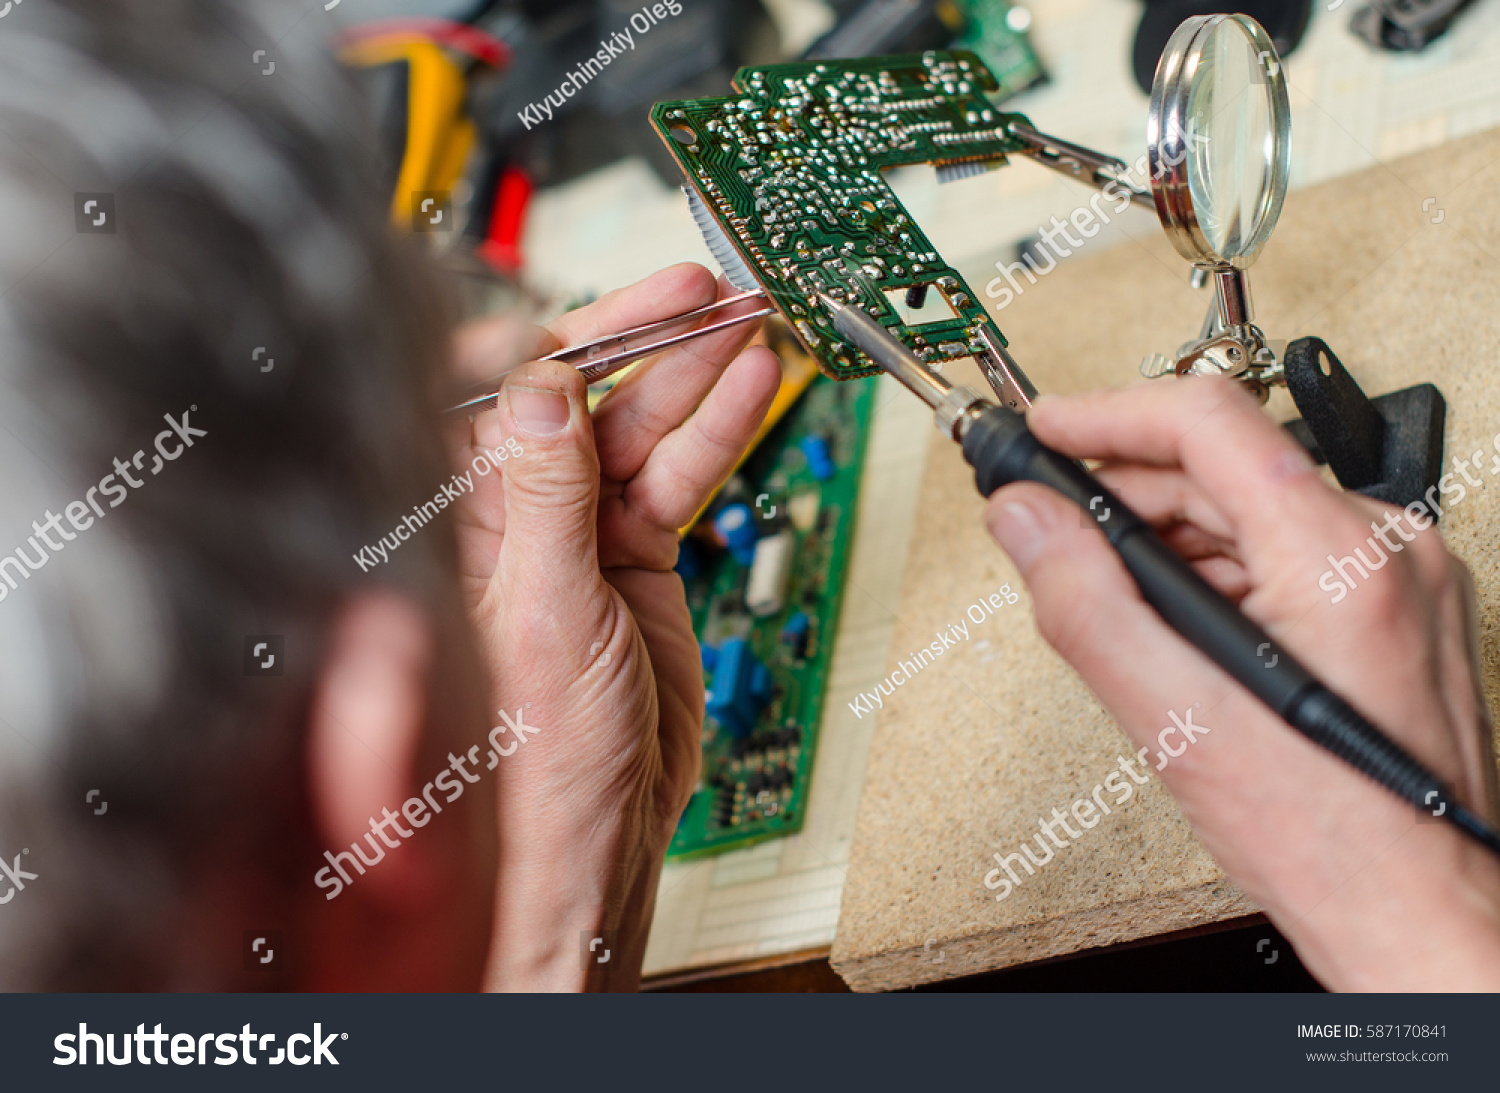 Electronic Technician Repairs Mobile Phone Using Stock Photo Edit Repairing Circuit Board With Soldering Iron Tweezers And Magnefier